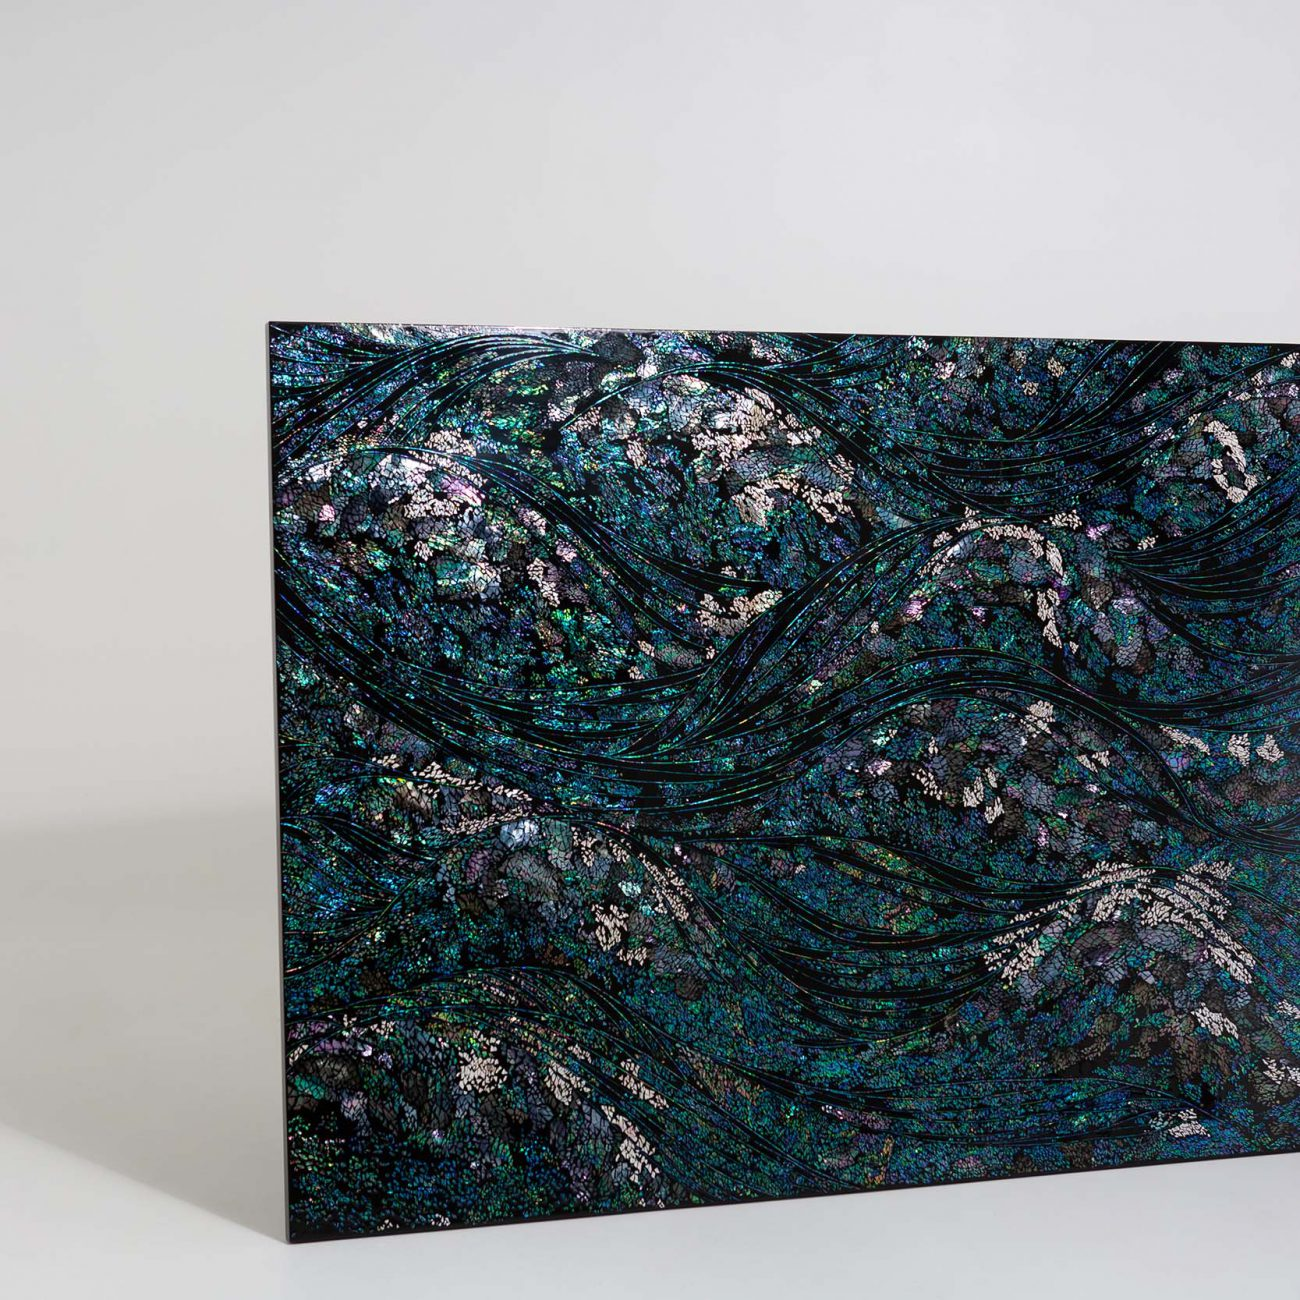 202015, Mother-of-pearl, hemp cloth on wood, natural lacquer, 120.3×180 cm, 2020 by JEONG Zik-Seong 정직성.